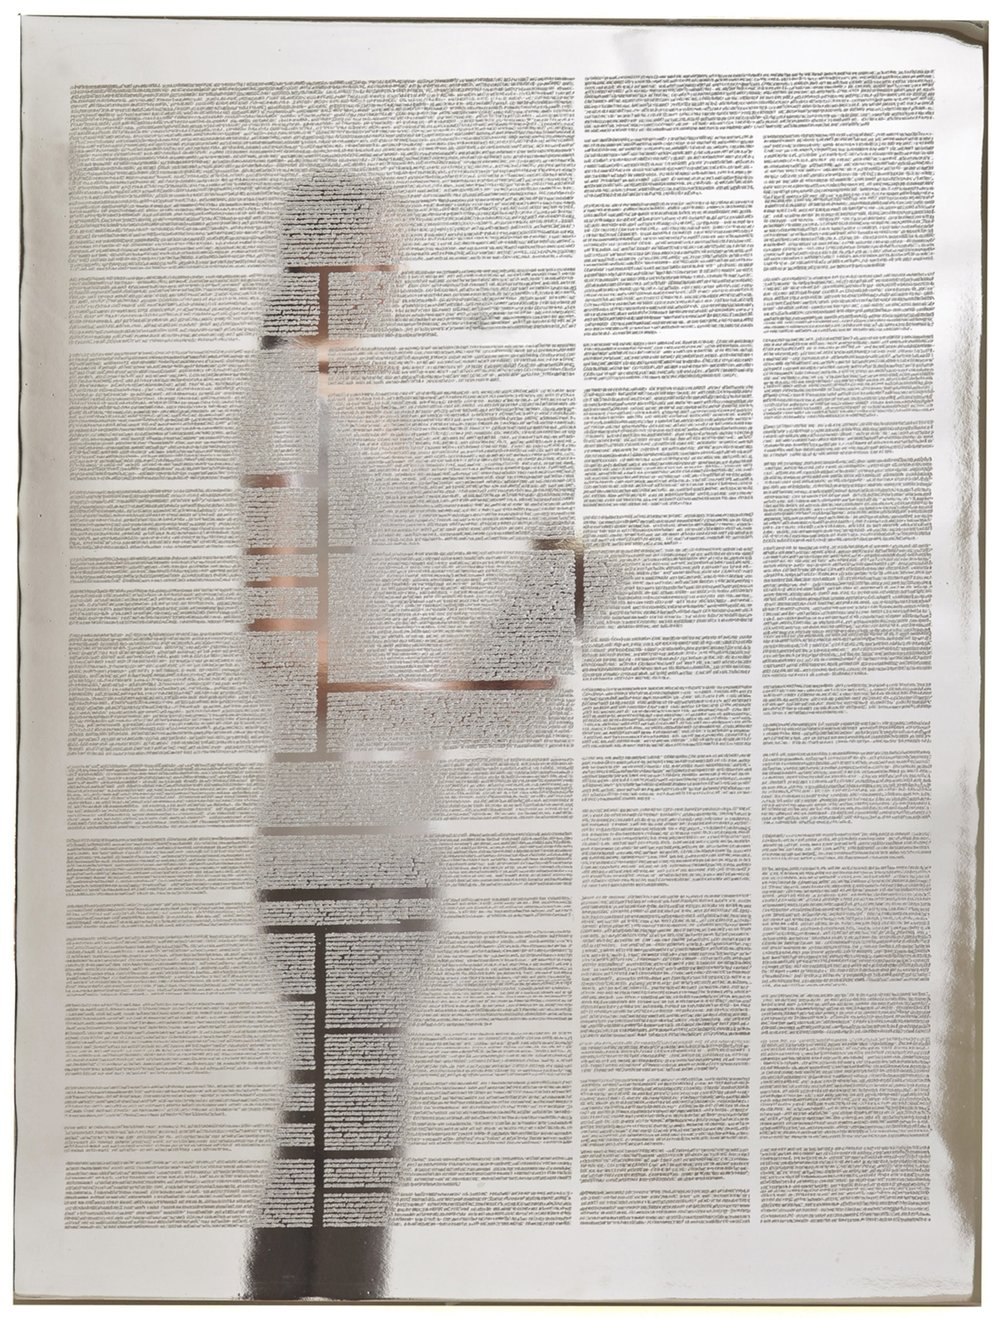 Tableaux #4-3310 (Transcriptions of collected social commentary from Chicago and Miami translated to Polish, Haitian Creole and Spanish) 2010Artist designed codex engraved onto mirror polished nickel plated aluminum26 x 19 inches -